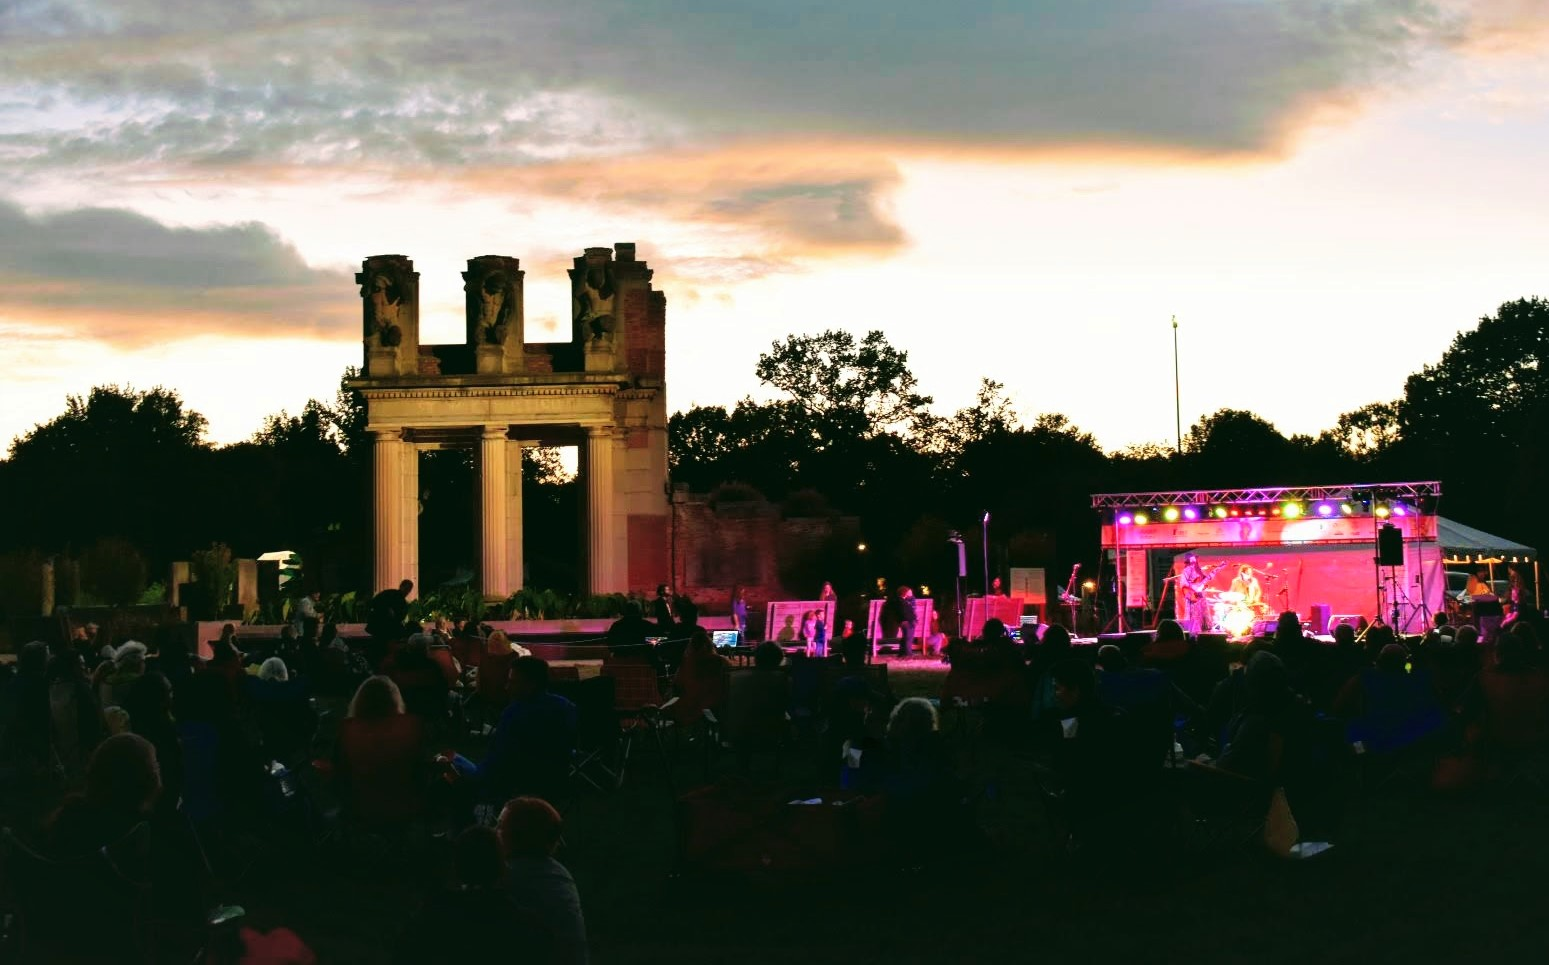 Photo of the ruins at night during a concert.